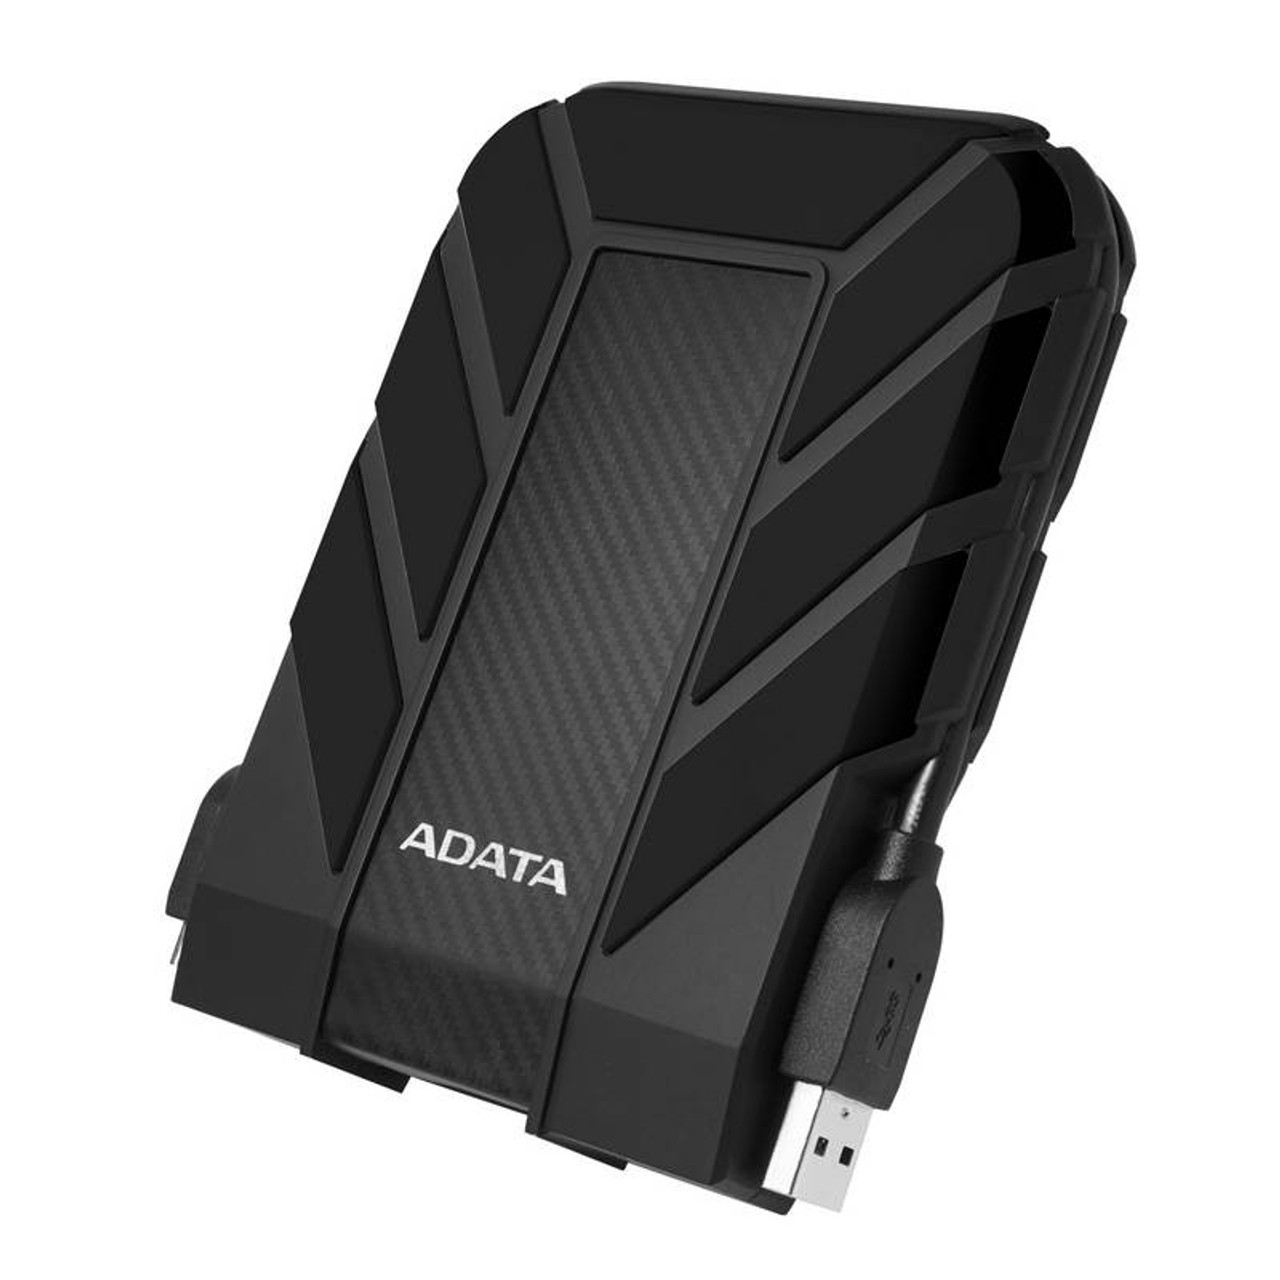 Image for Adata Rugged Pro HD710 4TB USB 3.0 Portable External Hard Drive - Black CX Computer Superstore